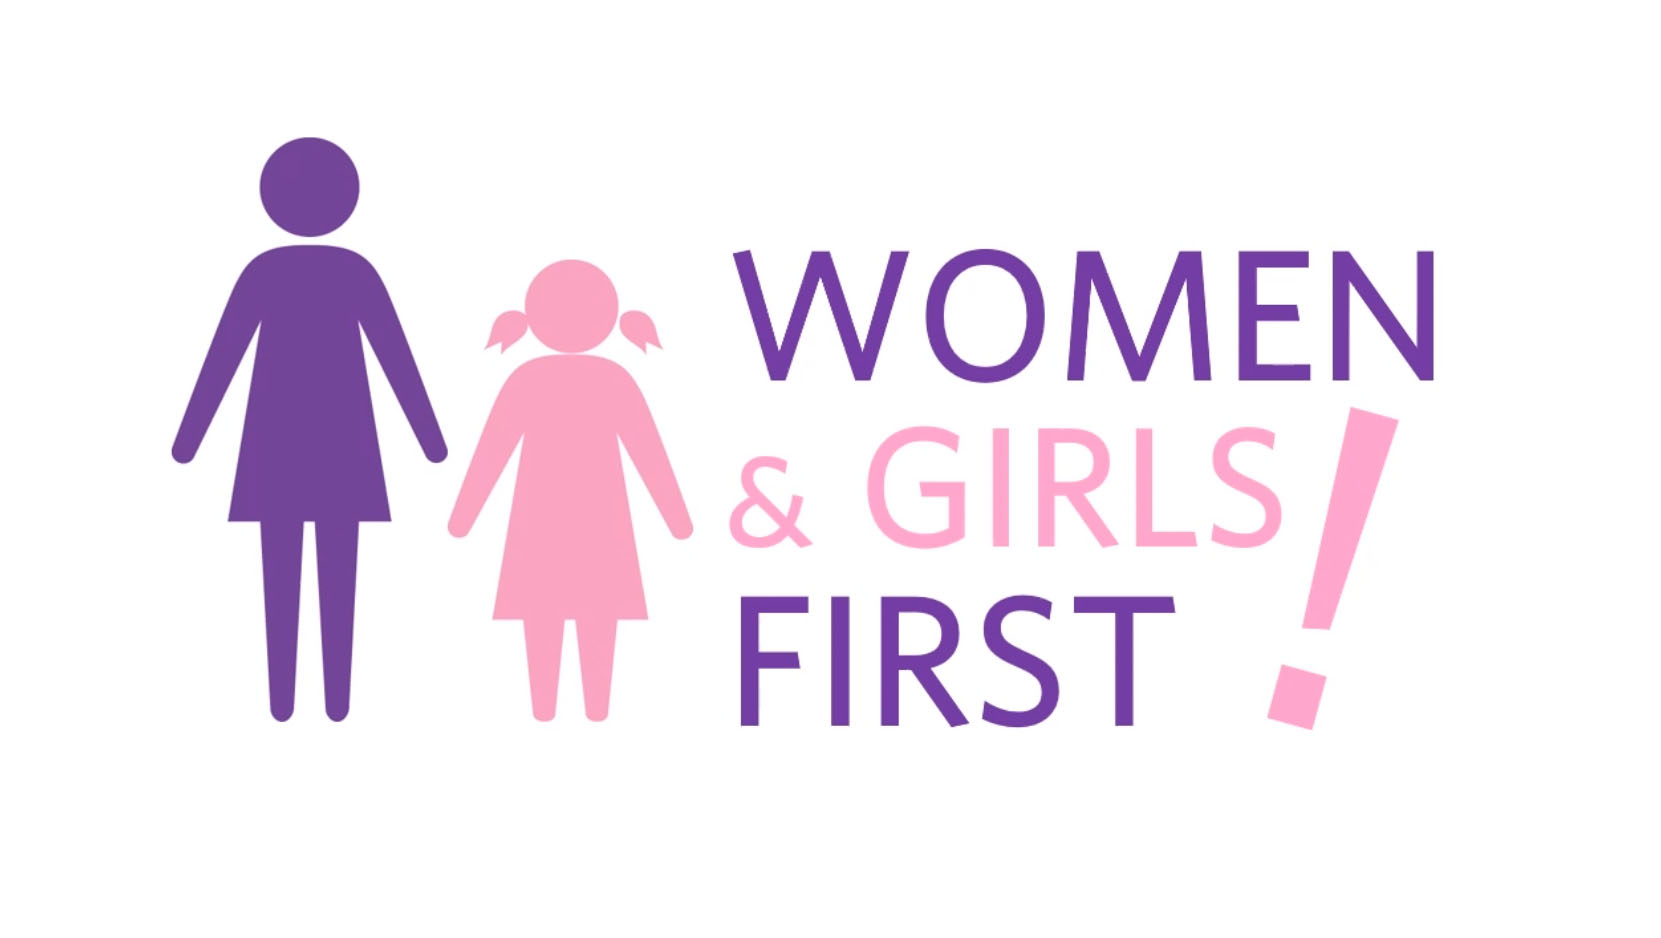 Women & Girls First!